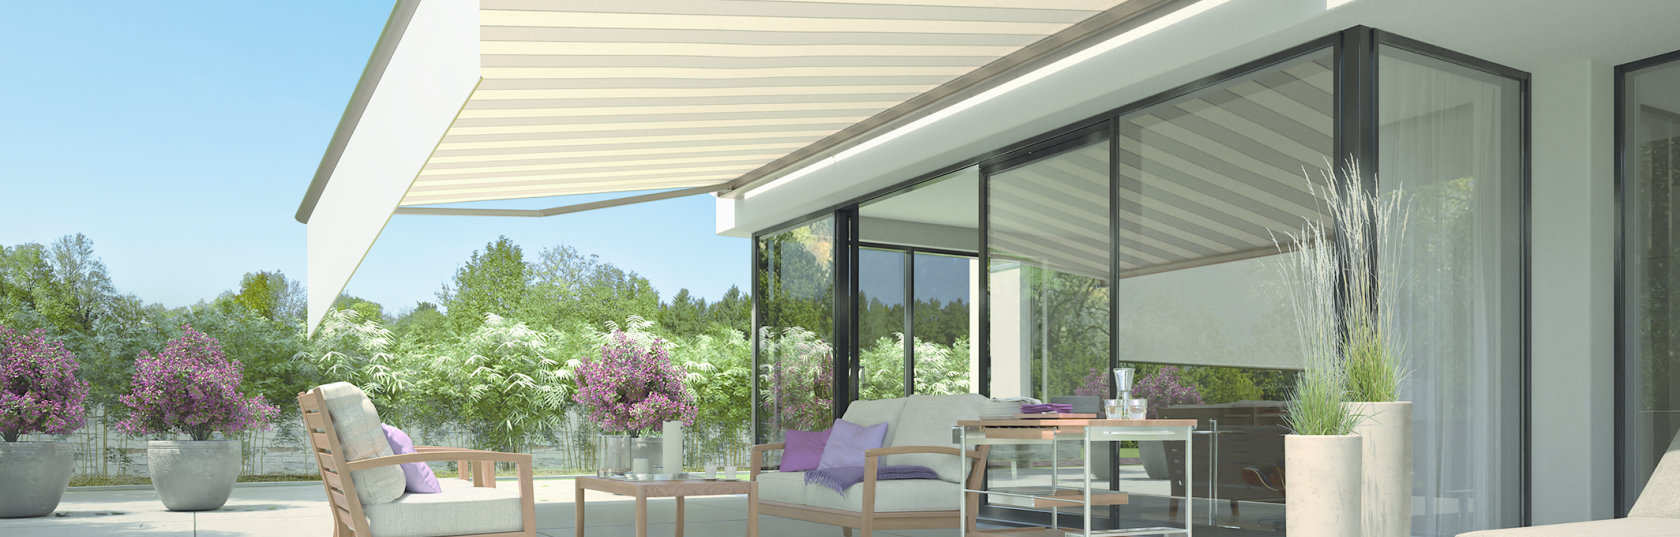 Everything you need to know about buying and installing an awning for your outdoor living